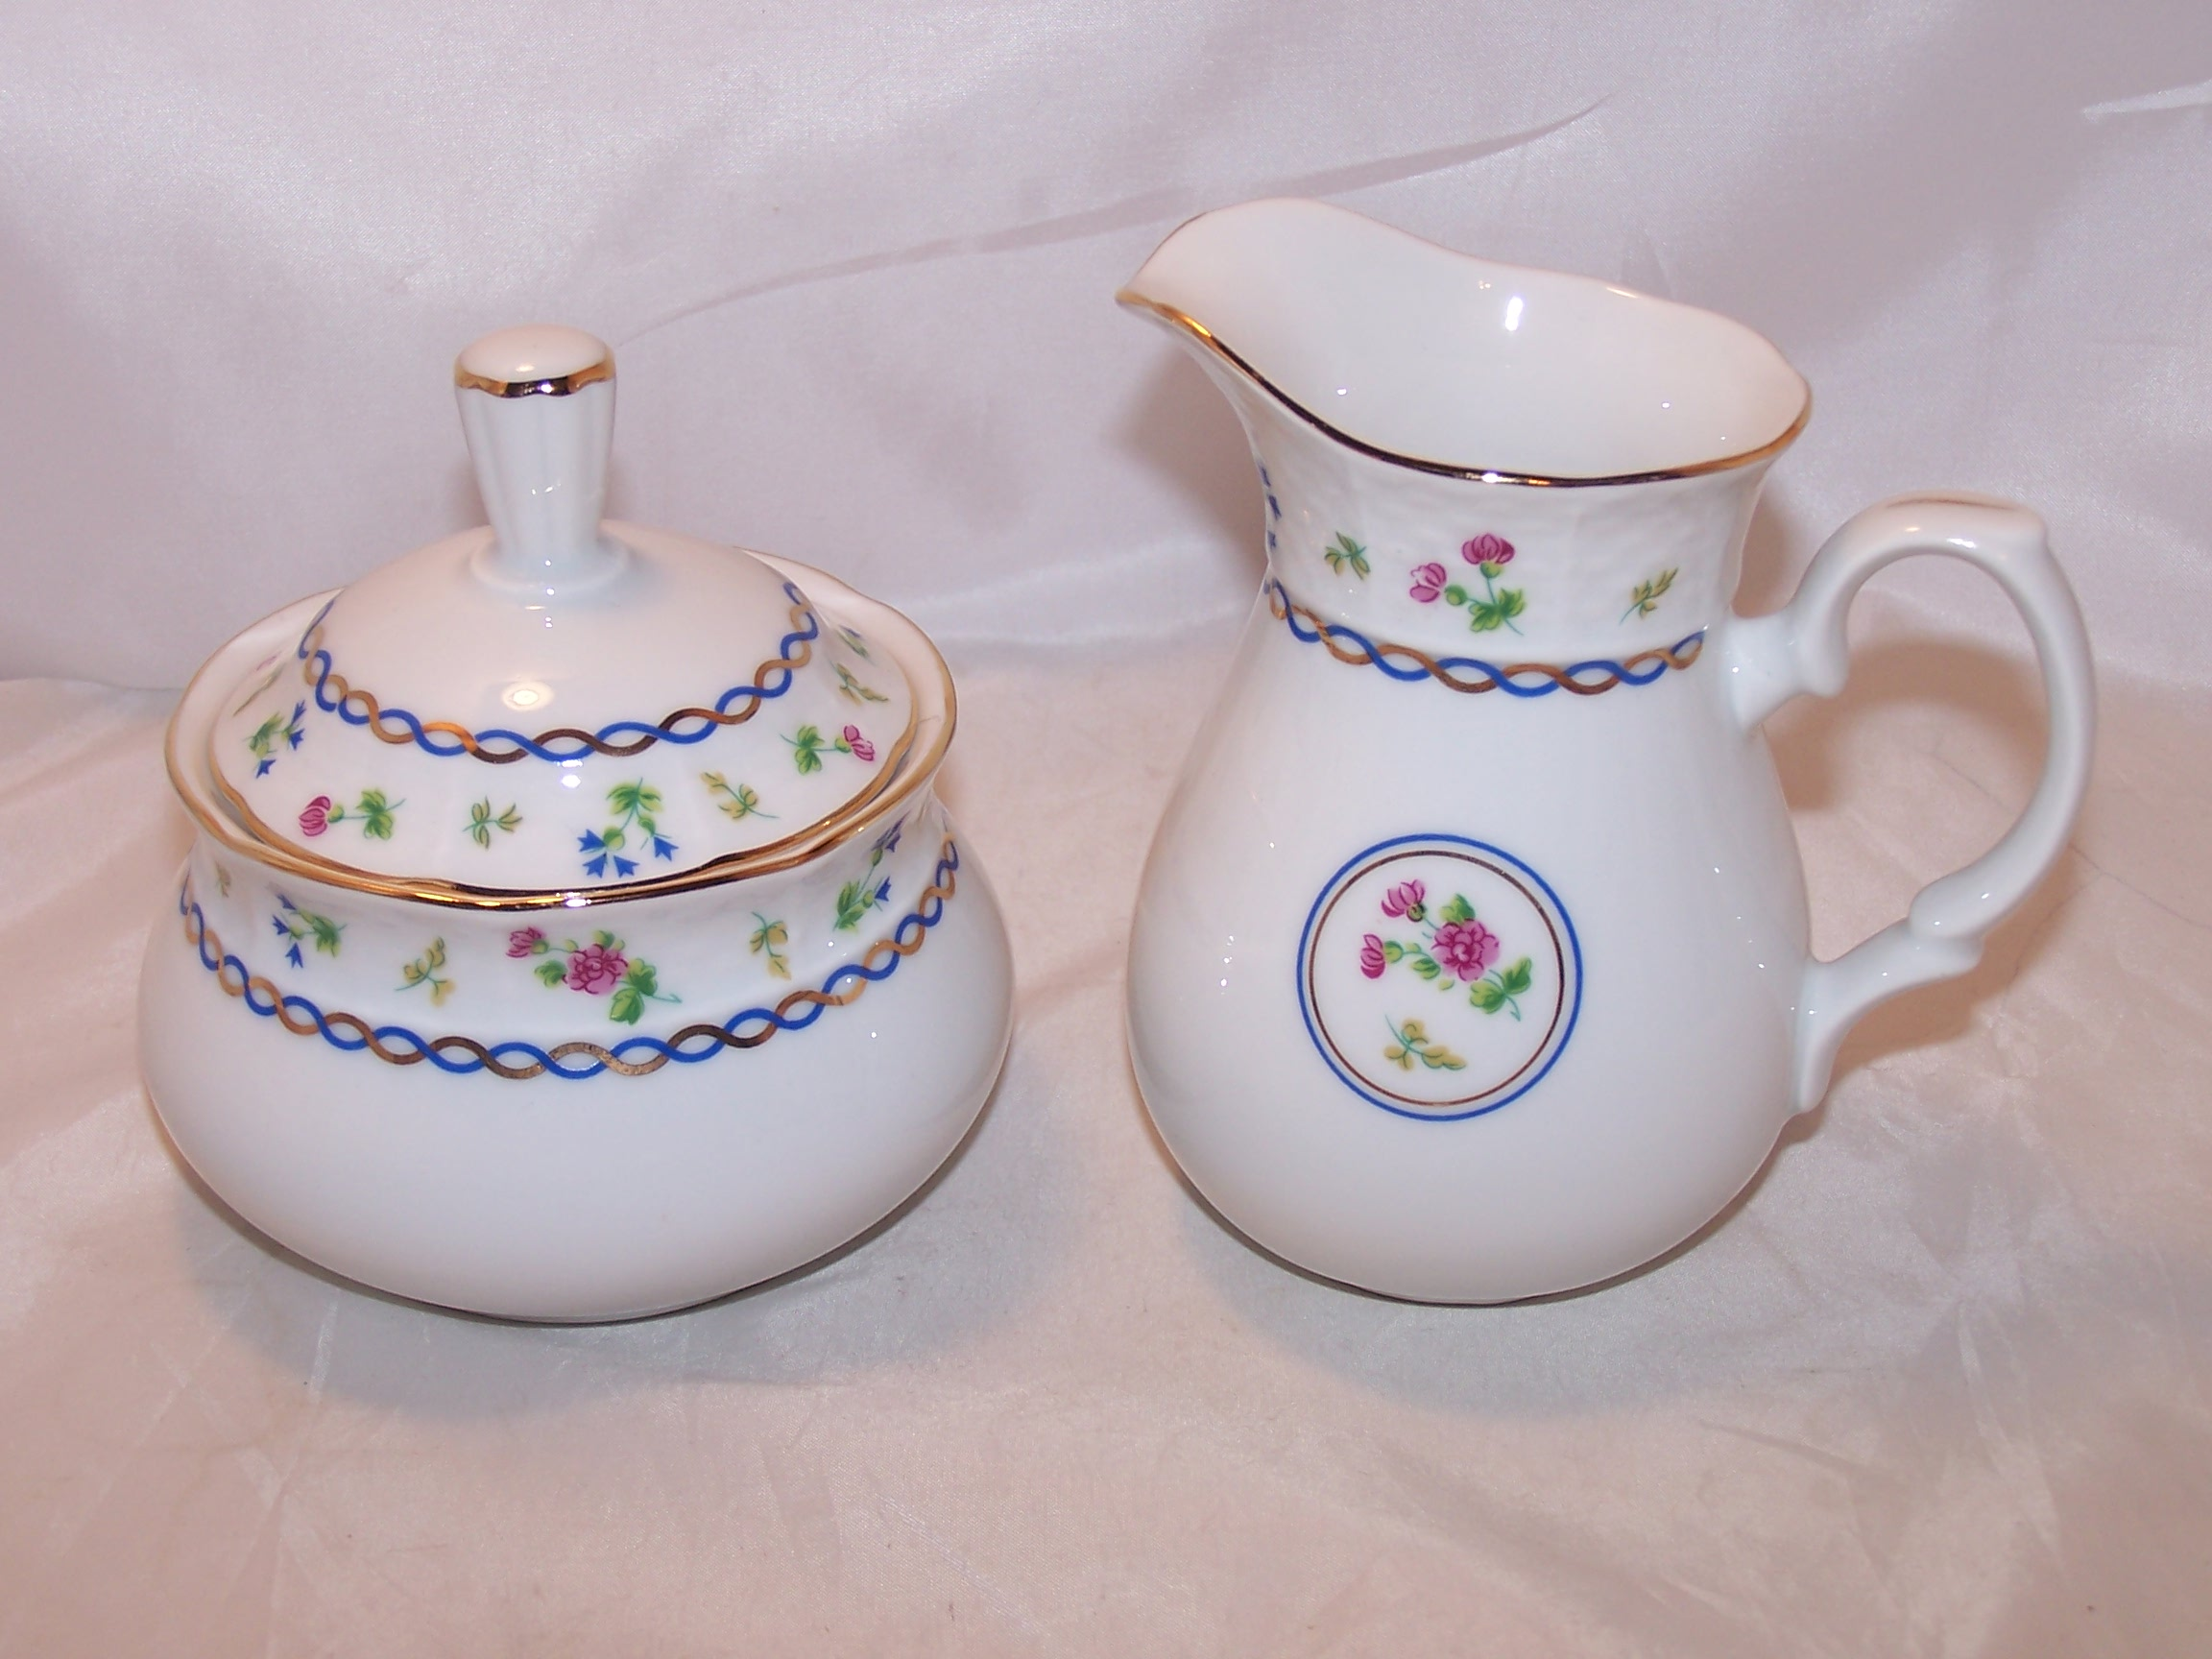 Baum Bros Thun Porcelain Creamer and Sugar, Czechoslovakia